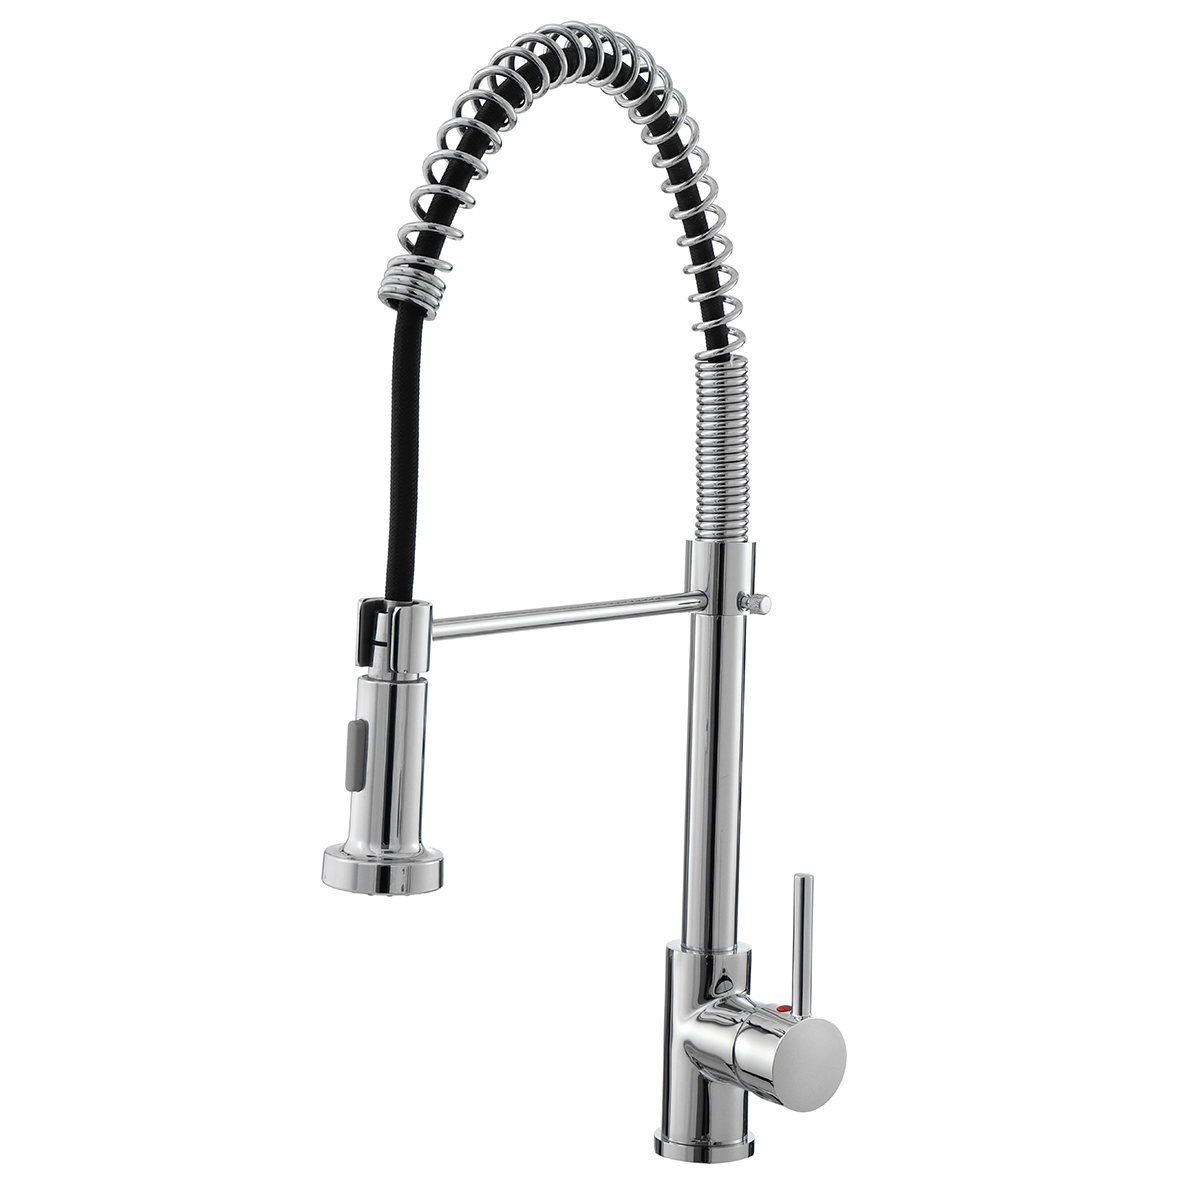 hallolure 20 pull out kitchen faucet low lead commercial single handle pull down sprayer spring kitchen sink faucet chrome kitchen faucets